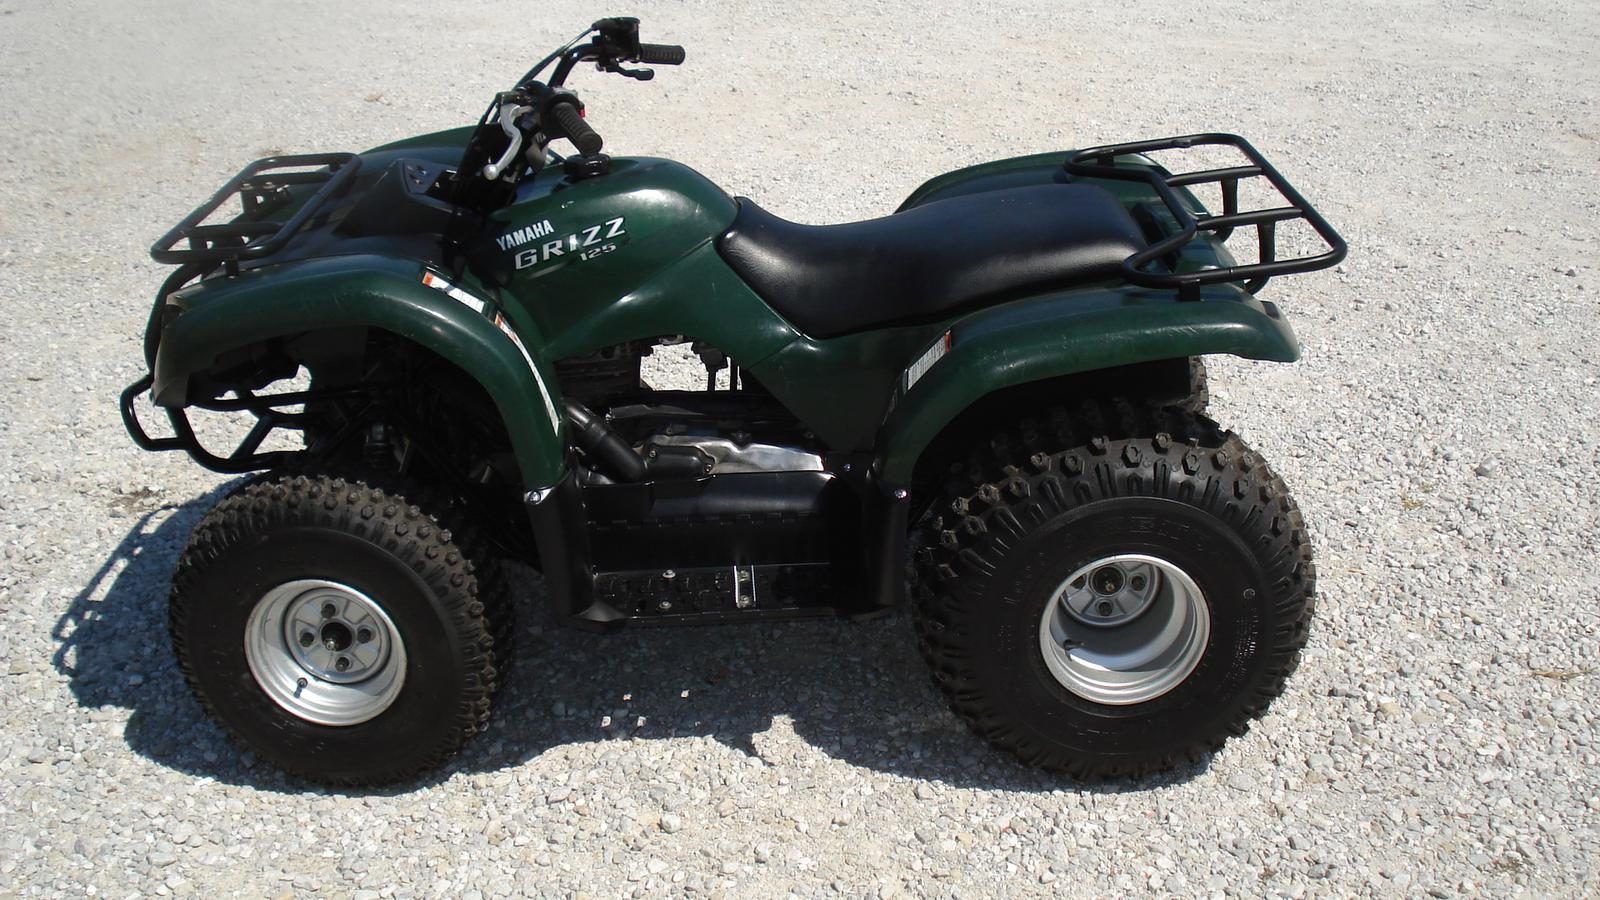 2005 Yamaha Grizzly 125 for sale in Neosho, MO | West 60 Cycle (417 ...